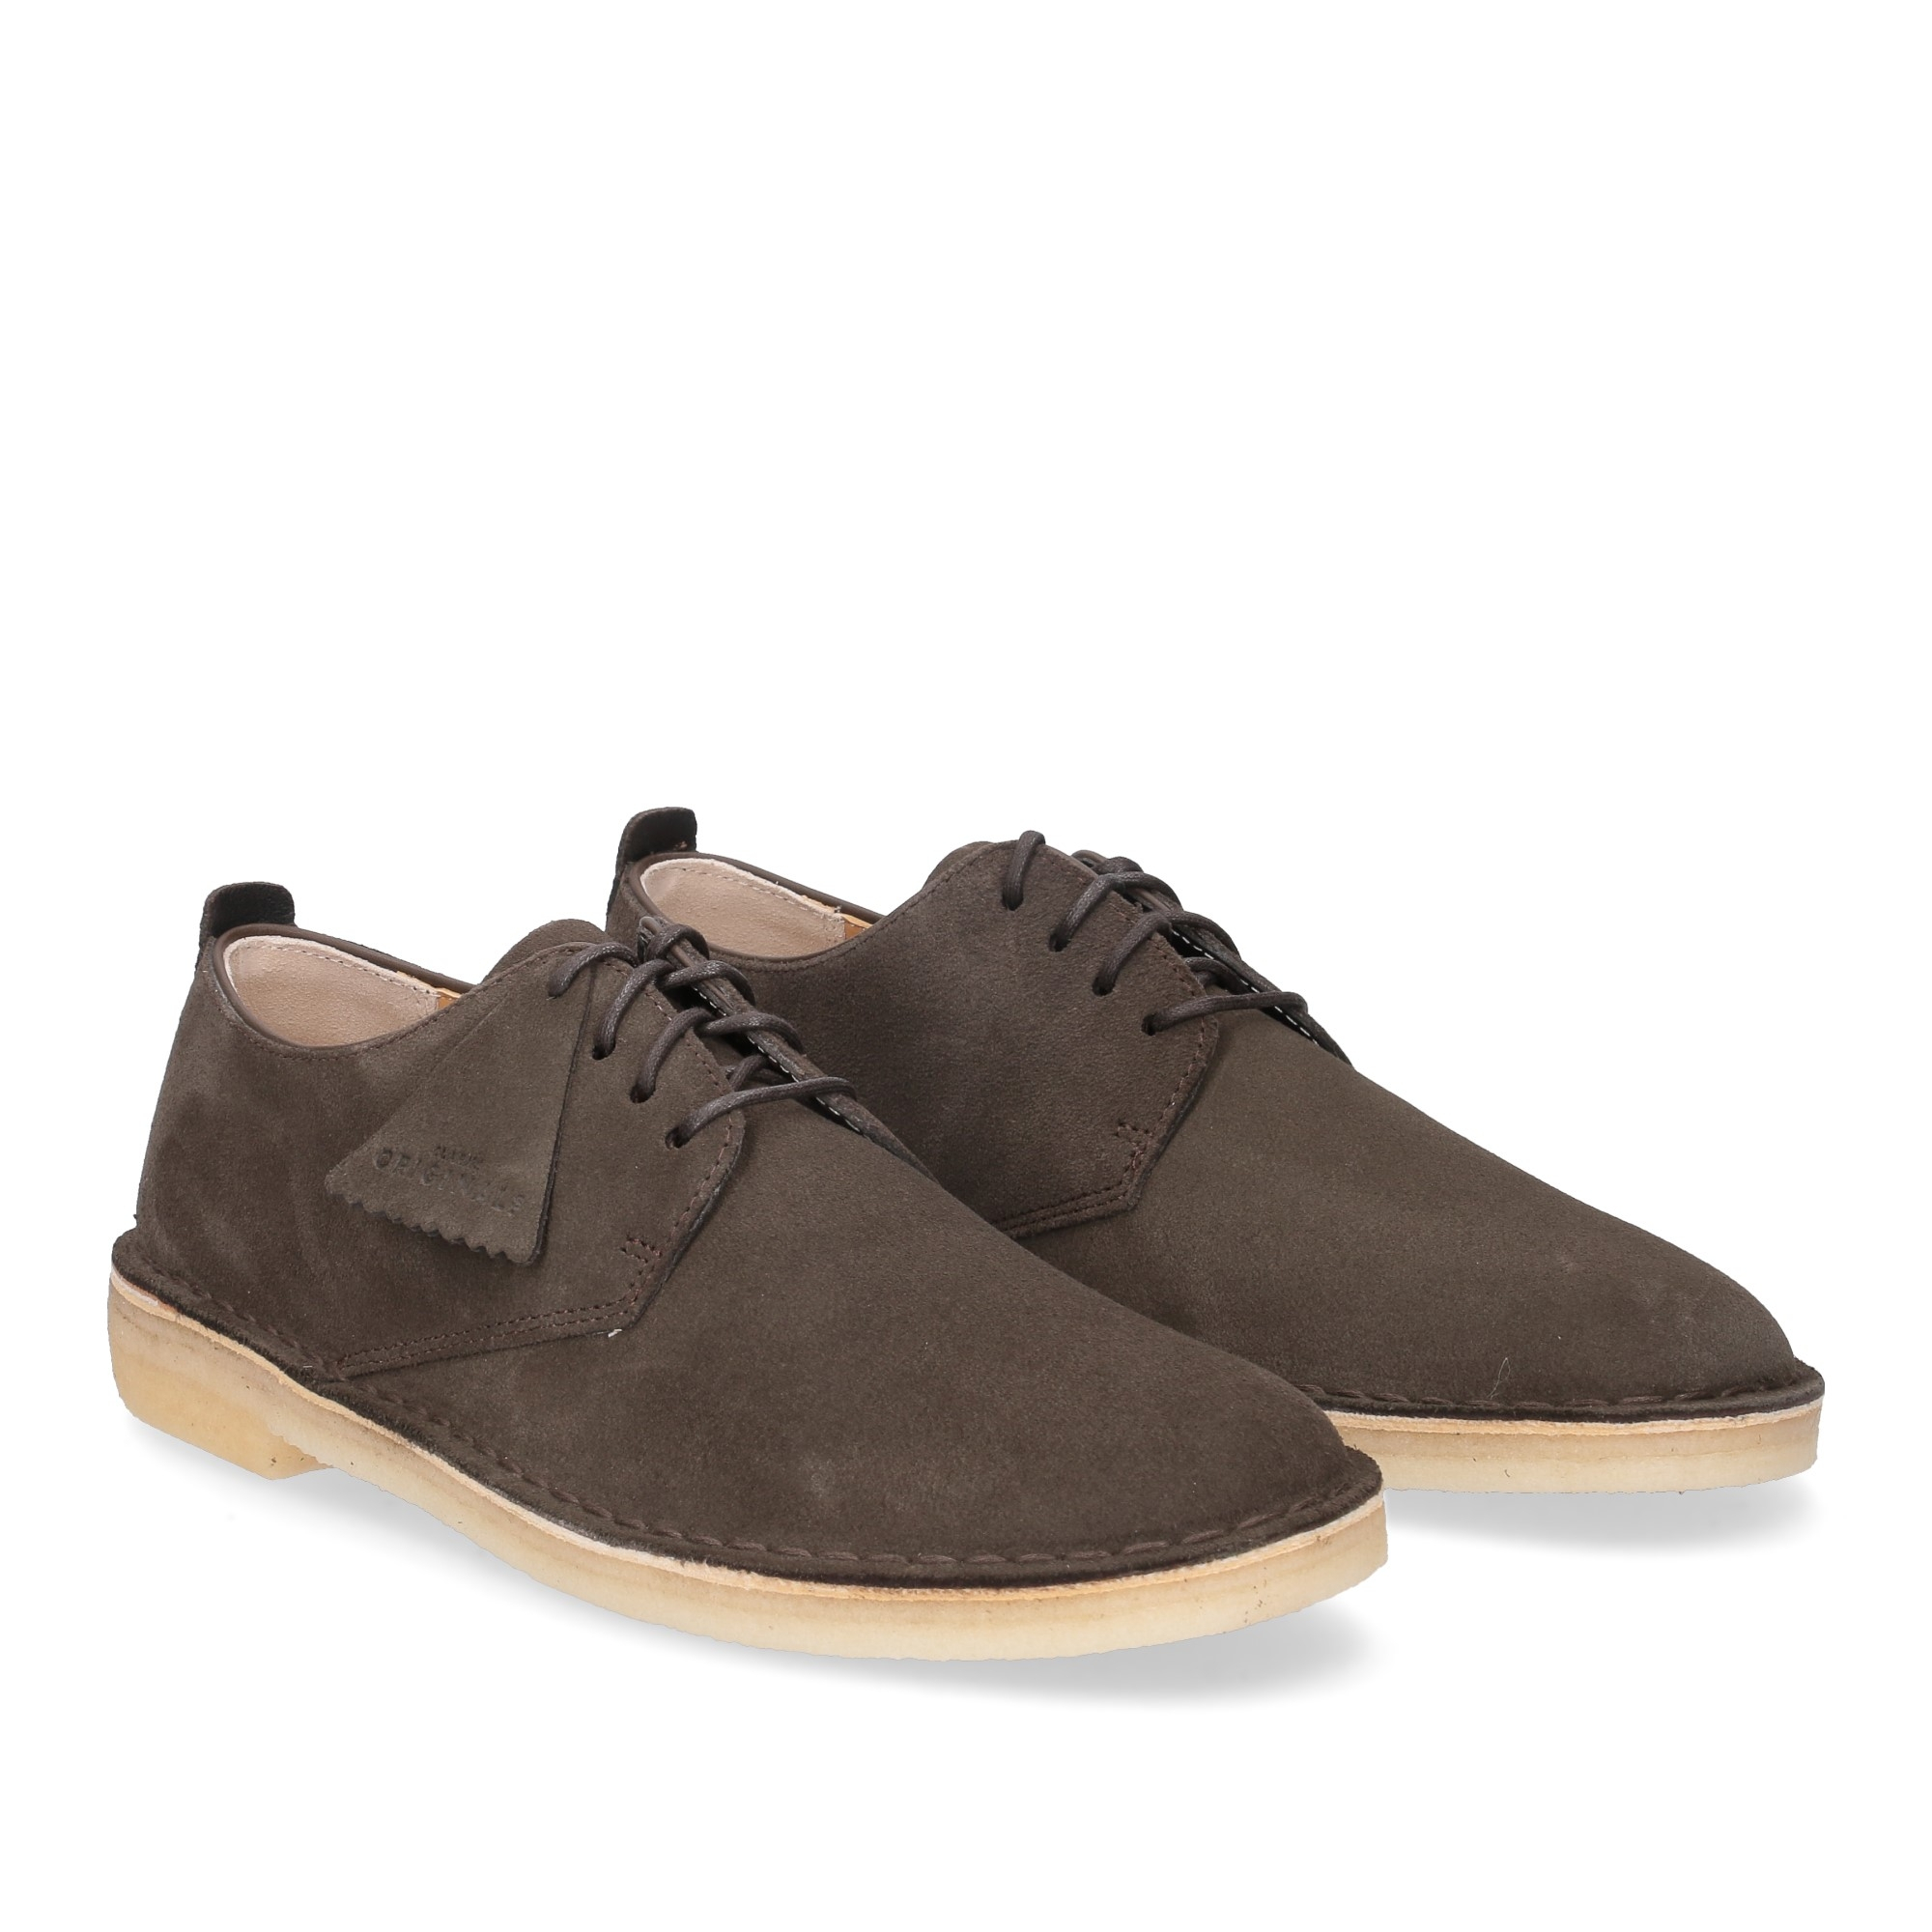 Clarks Original Desert London Peat Suede